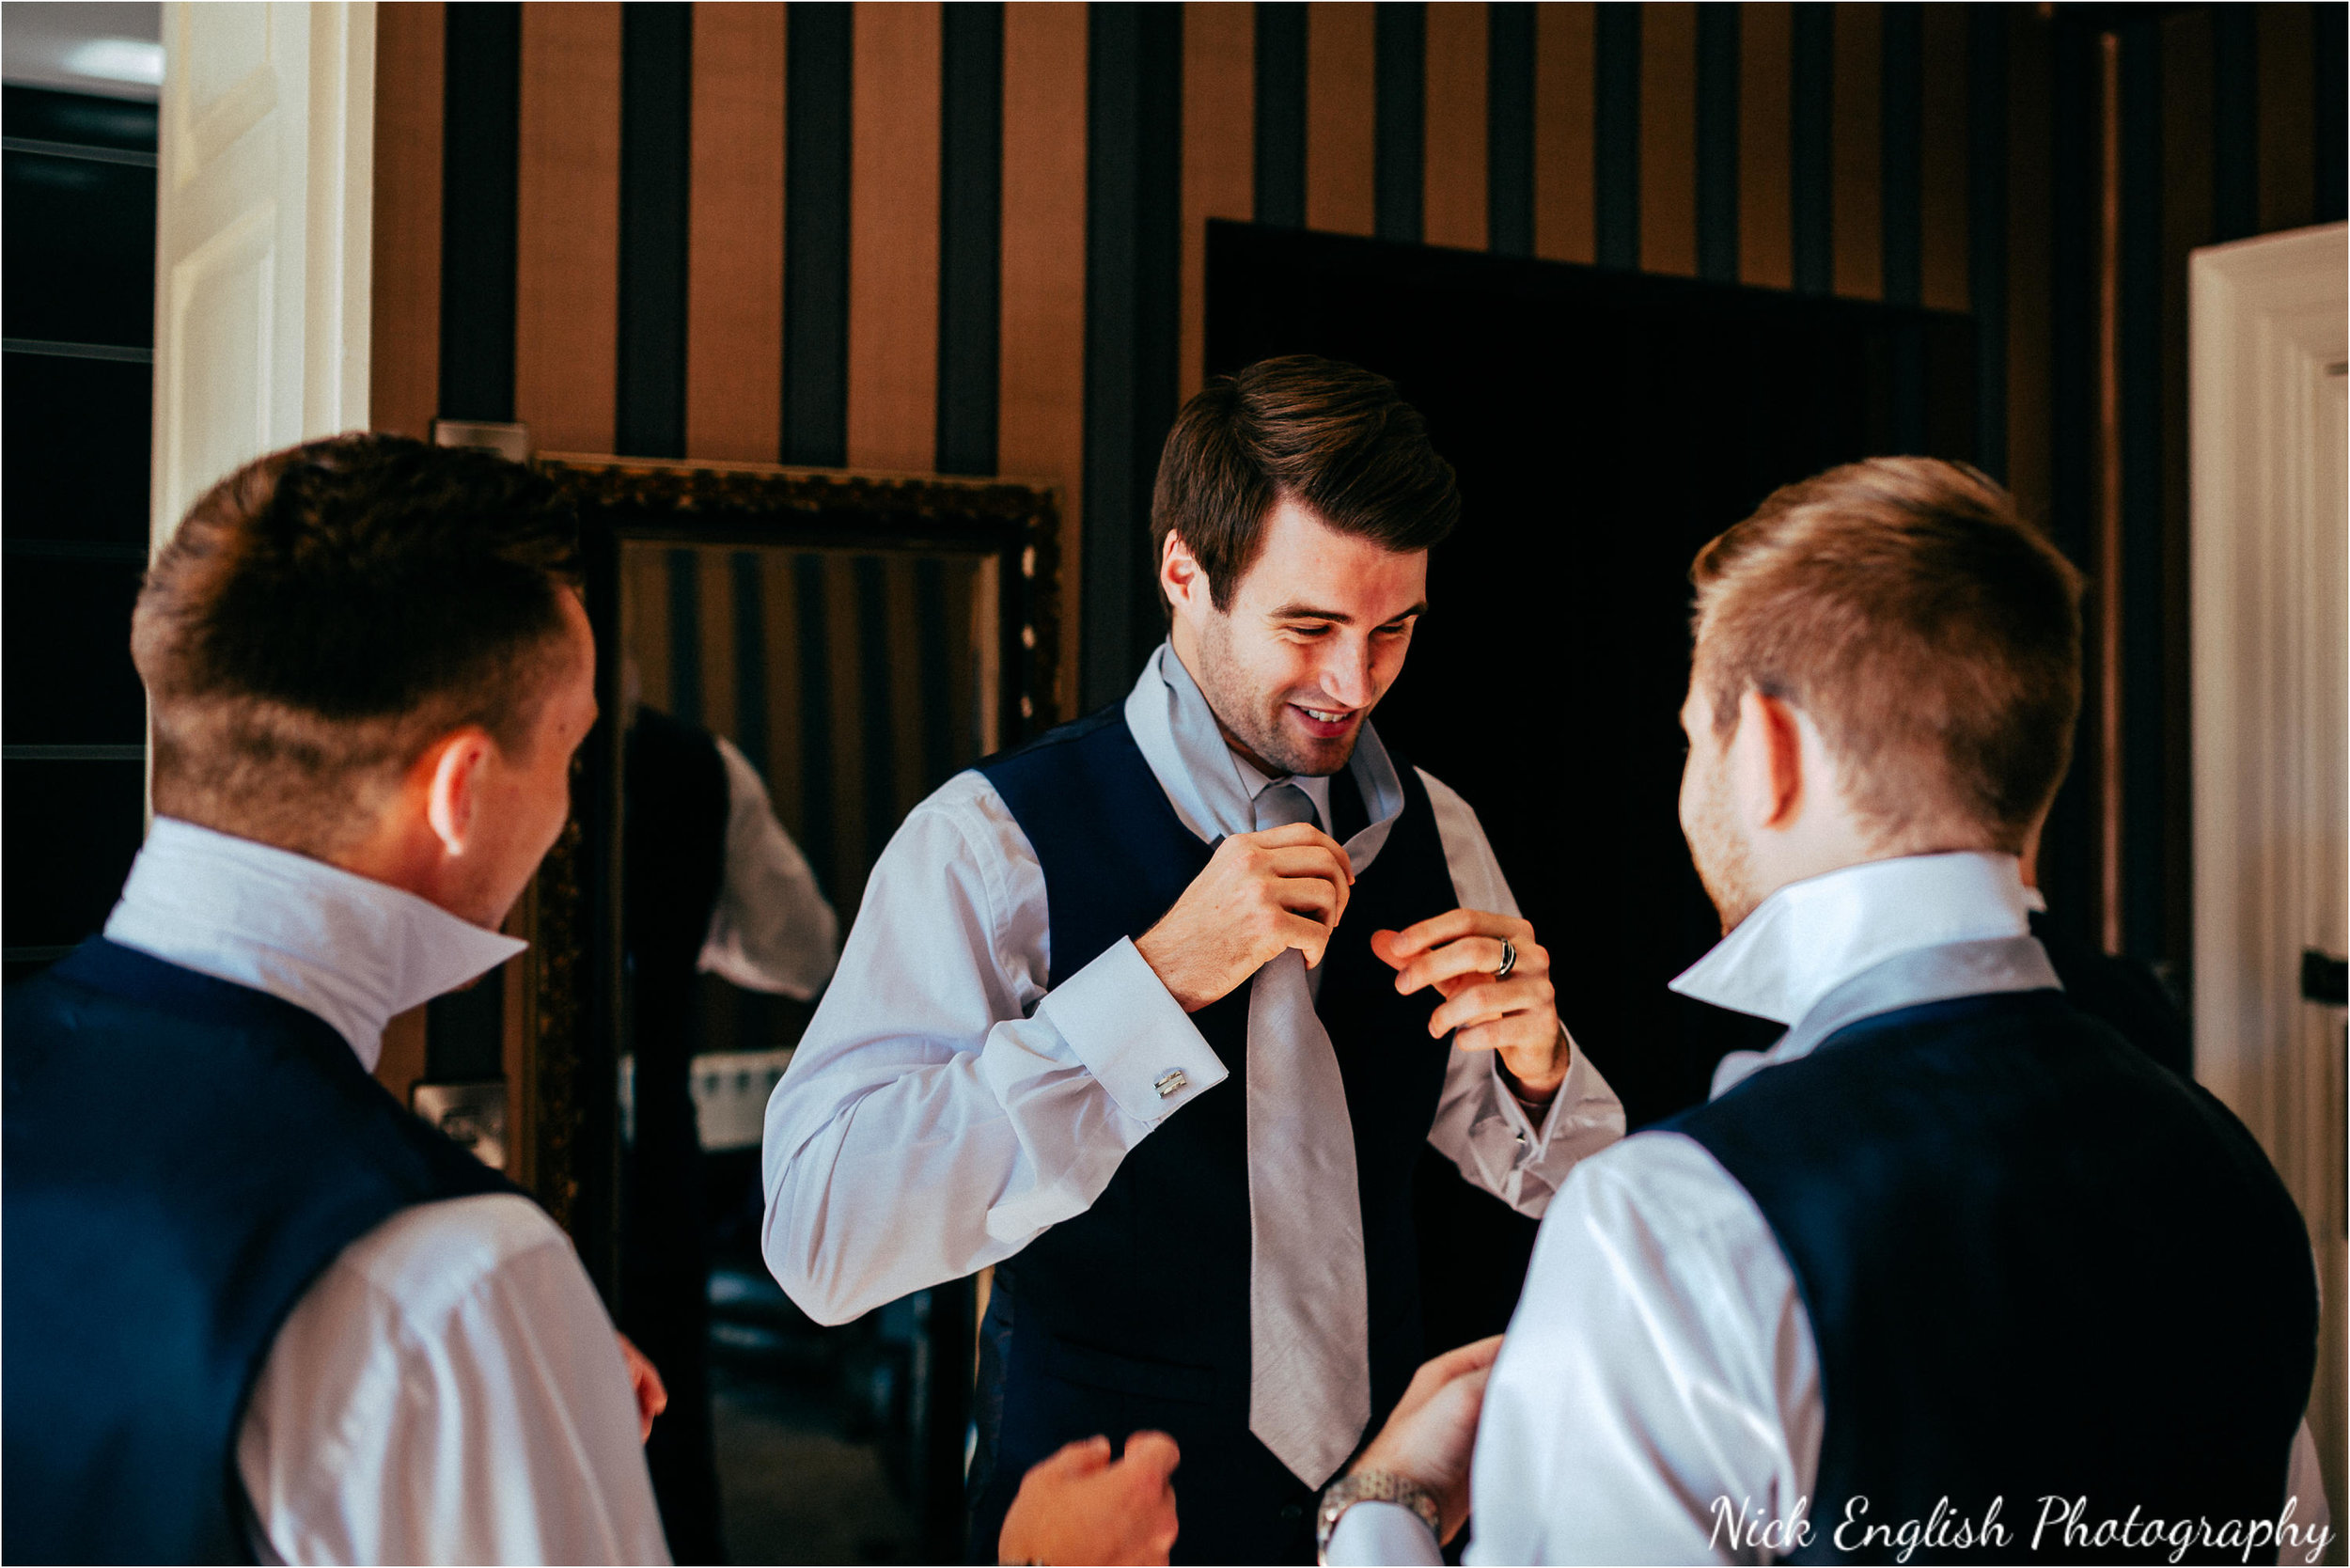 Eaves_Hall_Wedding_Photographs_Nick_English_Photography-29.jpg